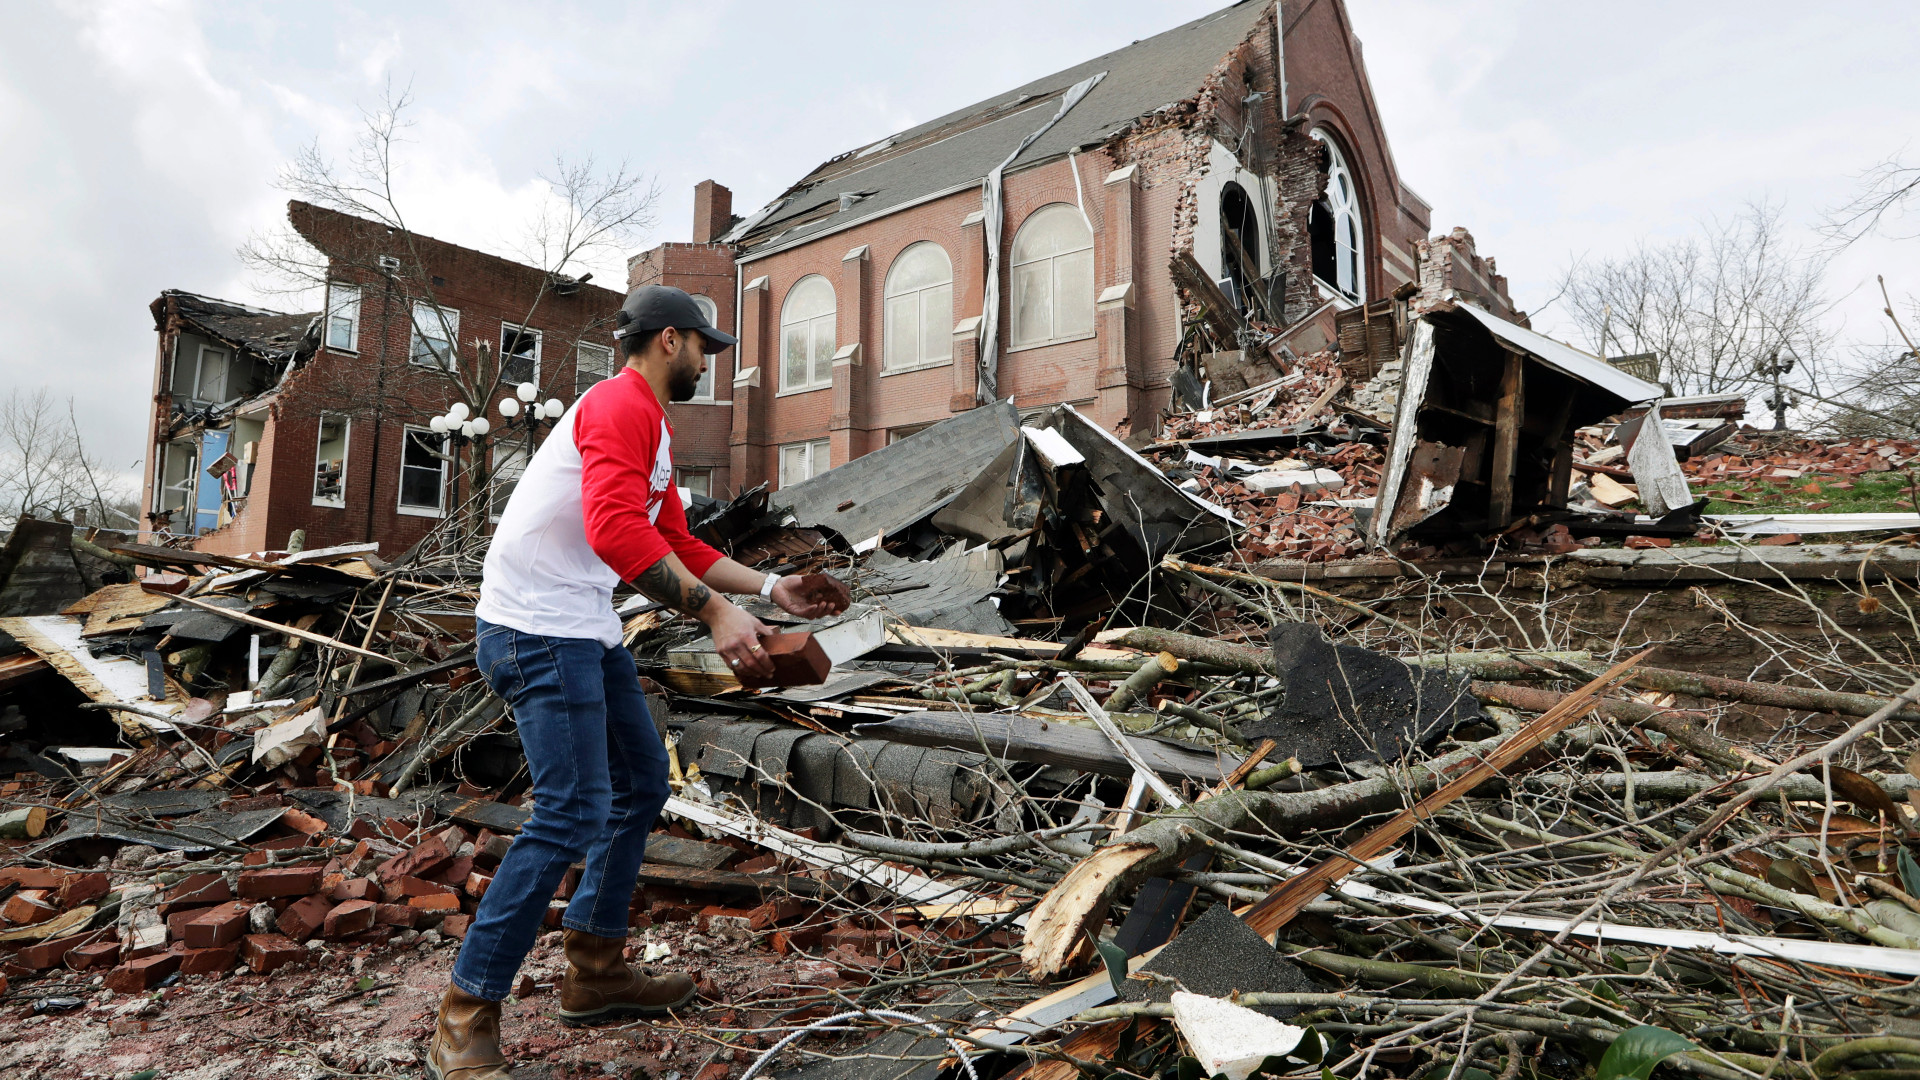 Man helps to clean up rubble at the East End United Methodist Church after it was heavily damaged by storms Tuesday, March 3, 2020, in Nashville, Tenn. (Mark Humphrey/AP)